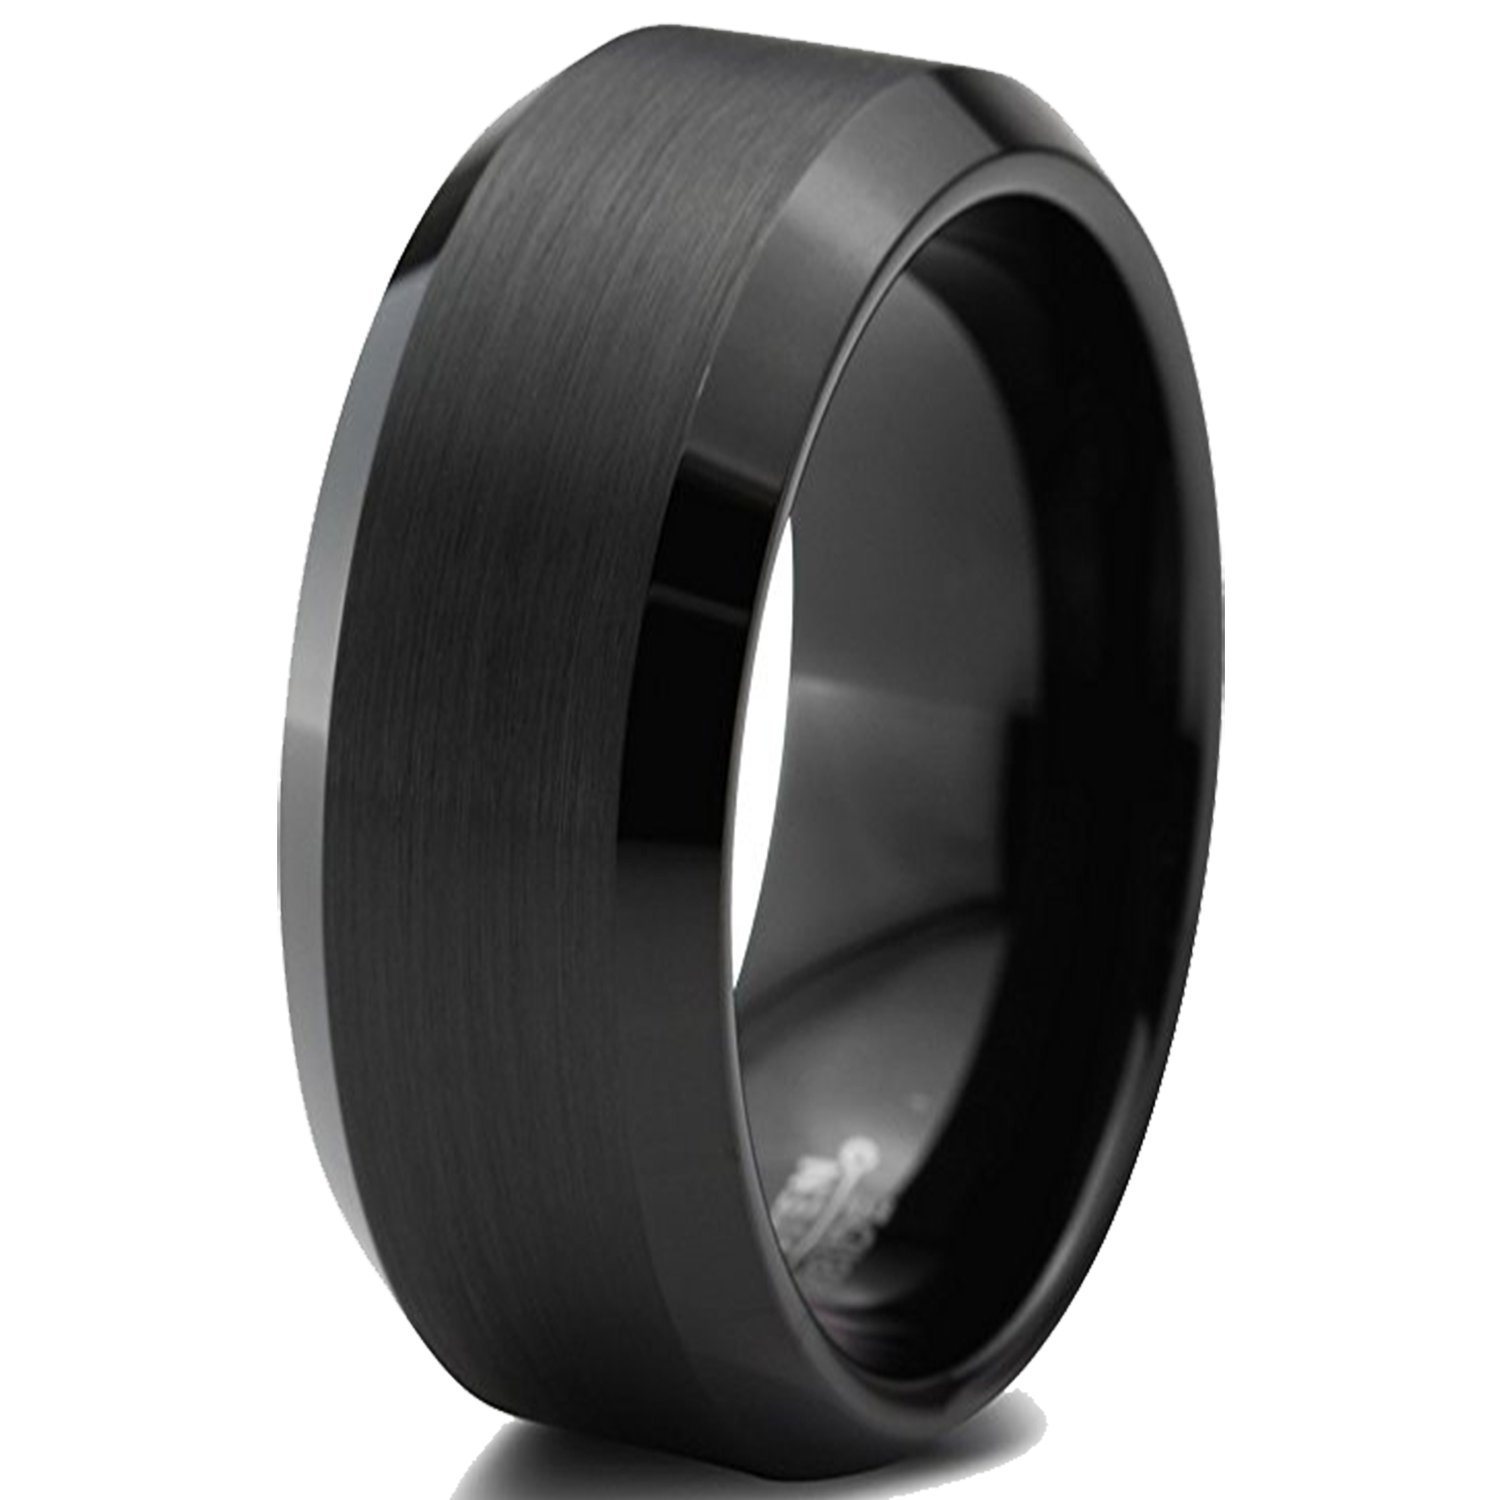 Tungsten Wedding Band Ring For Men & Women, Brushed Matte Black Engagement Ring Finish w/ Beveled Polished Edge - Durable and Comfortable 8mm Width Ring